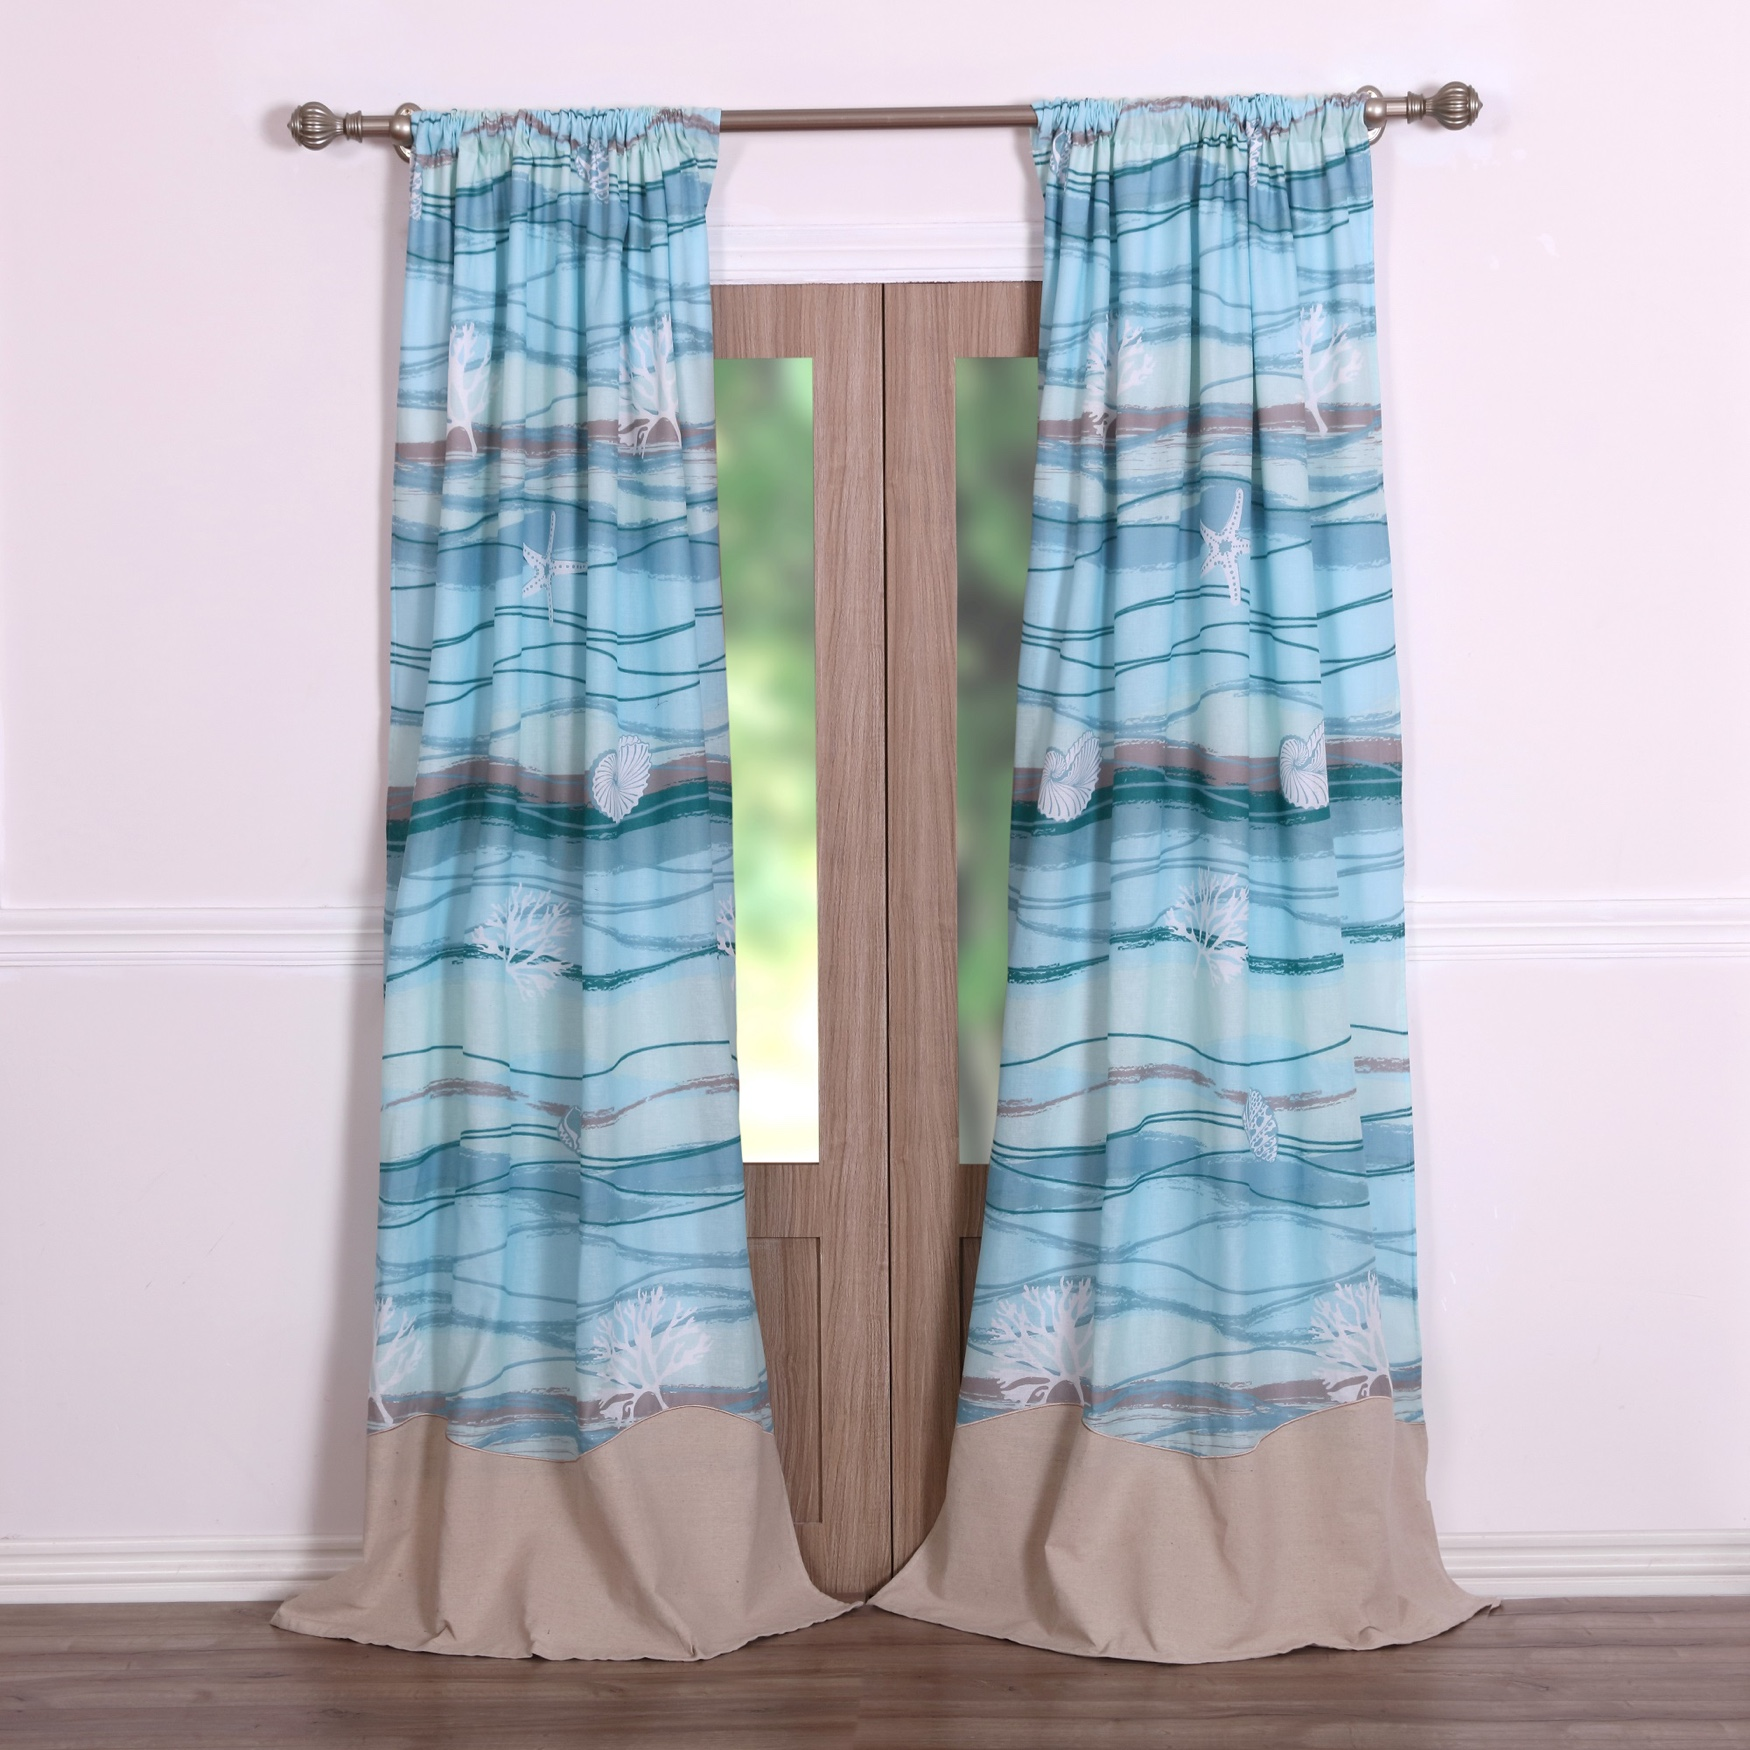 Maui Curtain Panel Pair by Greenland Home Fashions, MULTI